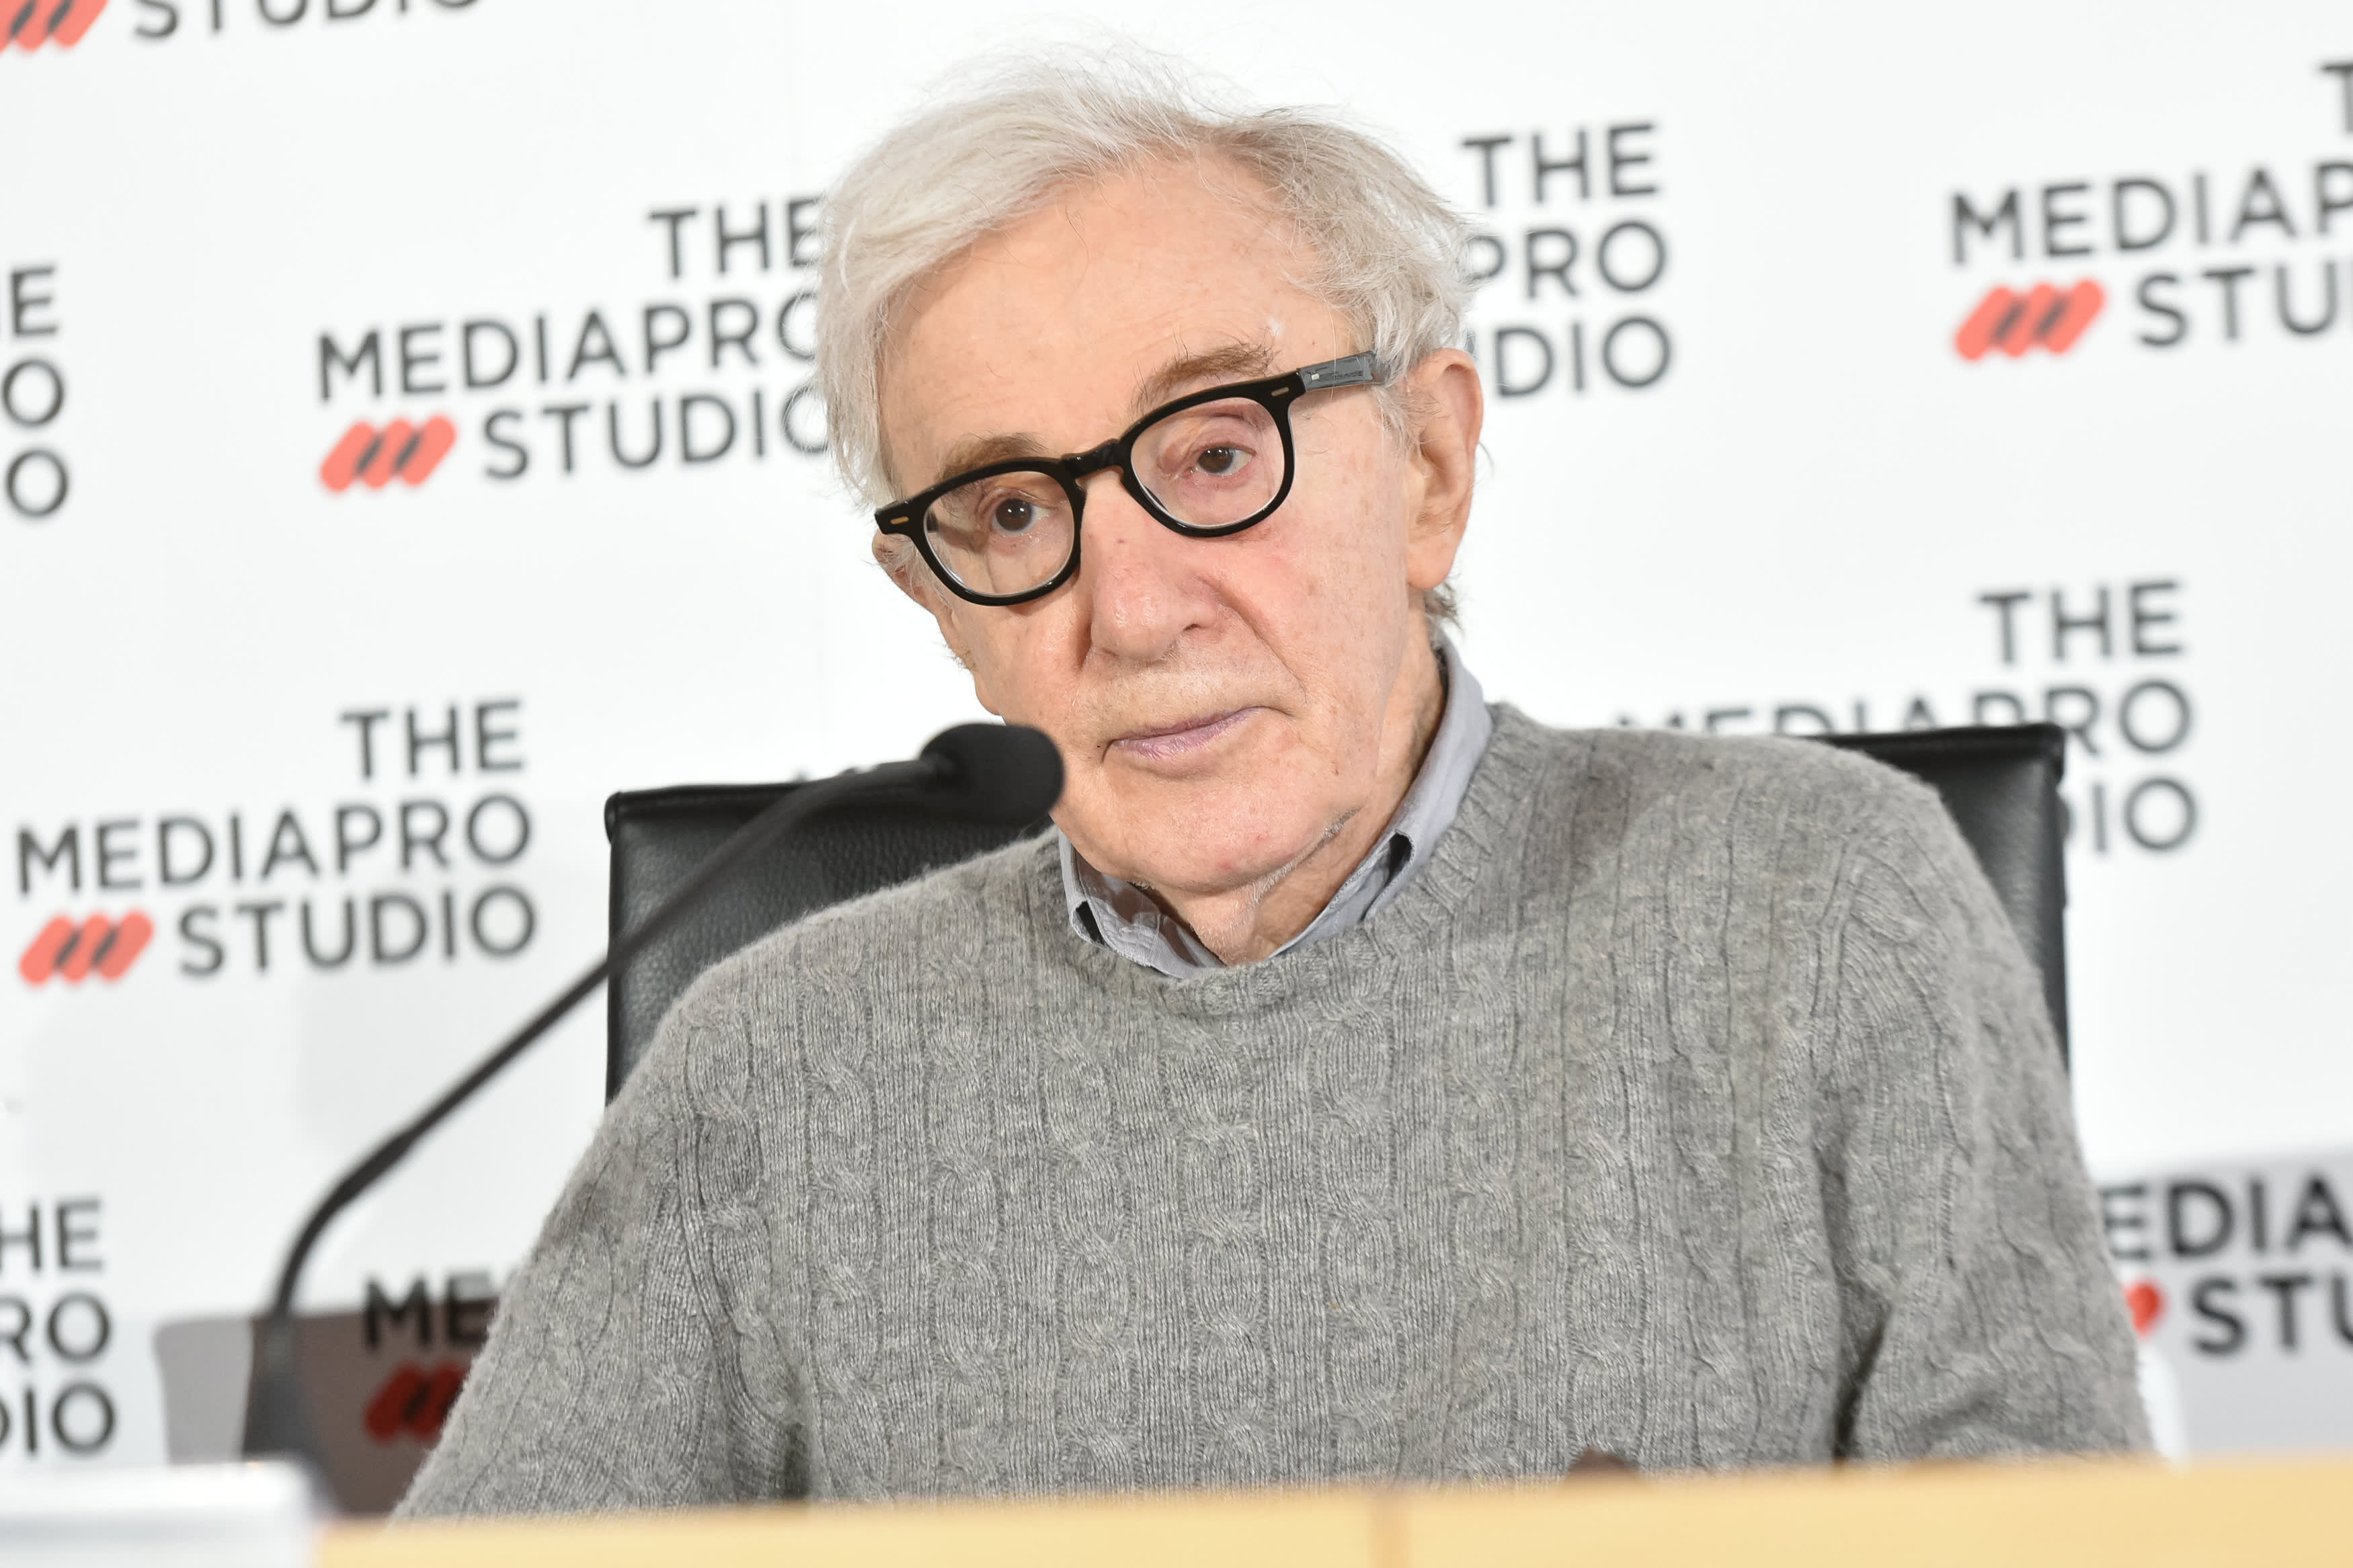 Explosive Woody Allen documentary series coming to HBO – CNBC